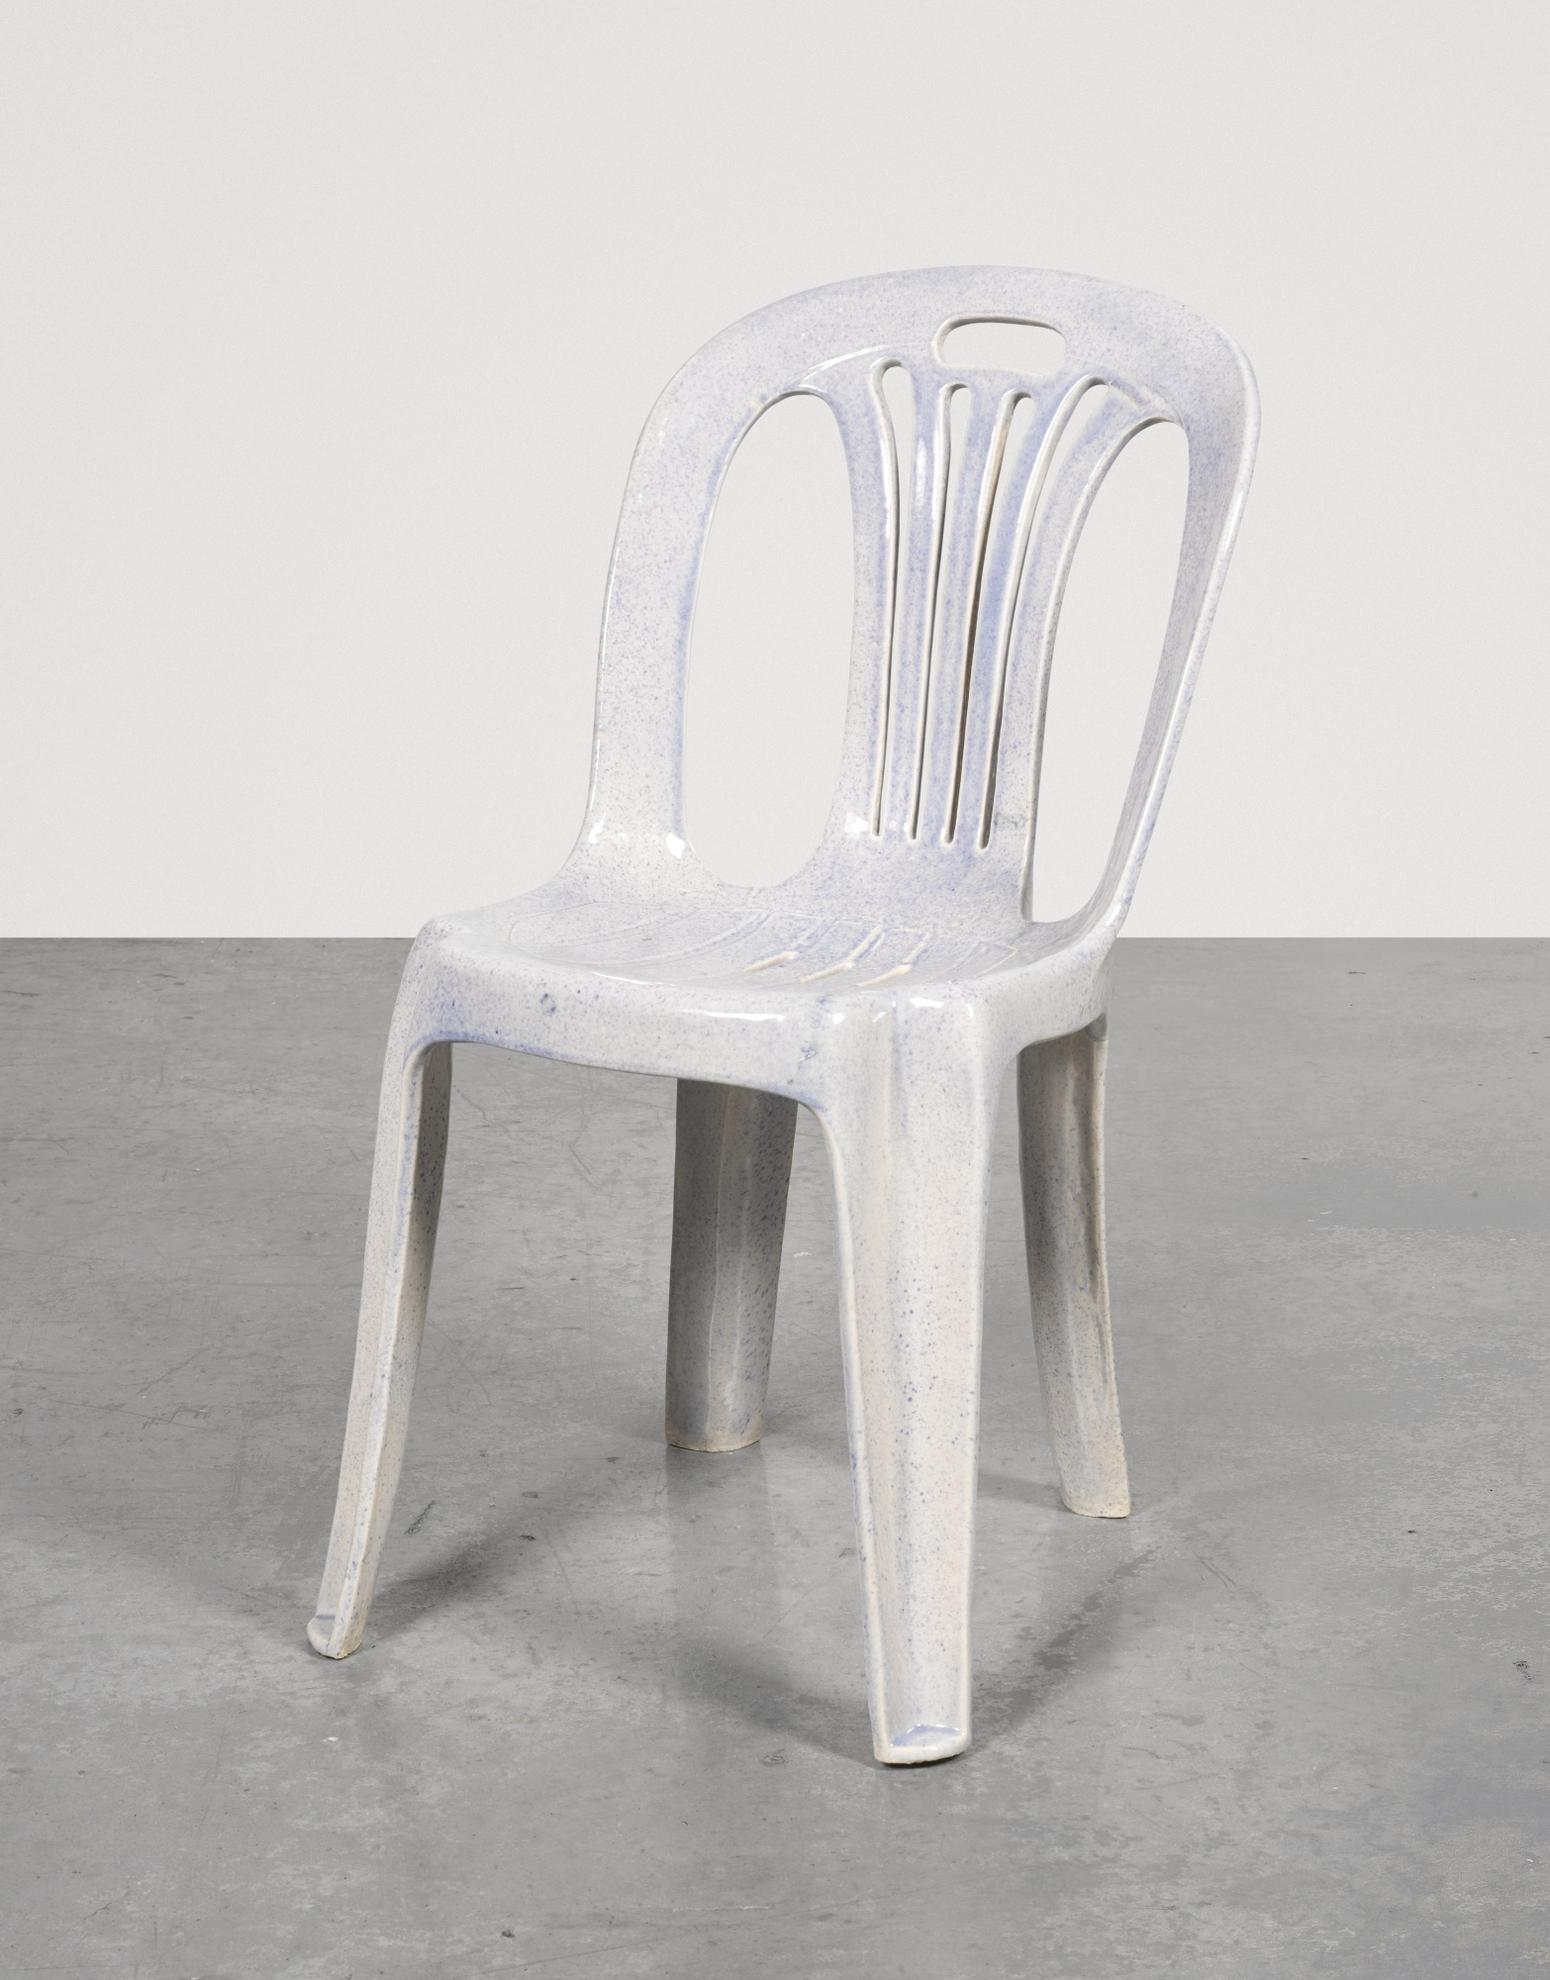 Sam Durant-Light Blue, Unique Mono-Block Resin Chair, Built At Jiao Zhi Studio, Xiamen, China, Produced By Ye Xing You With Craftspeople Xu Fu Fa And Chen Zhong Liang. Kang Youteng, Project Manger And Liason-2006